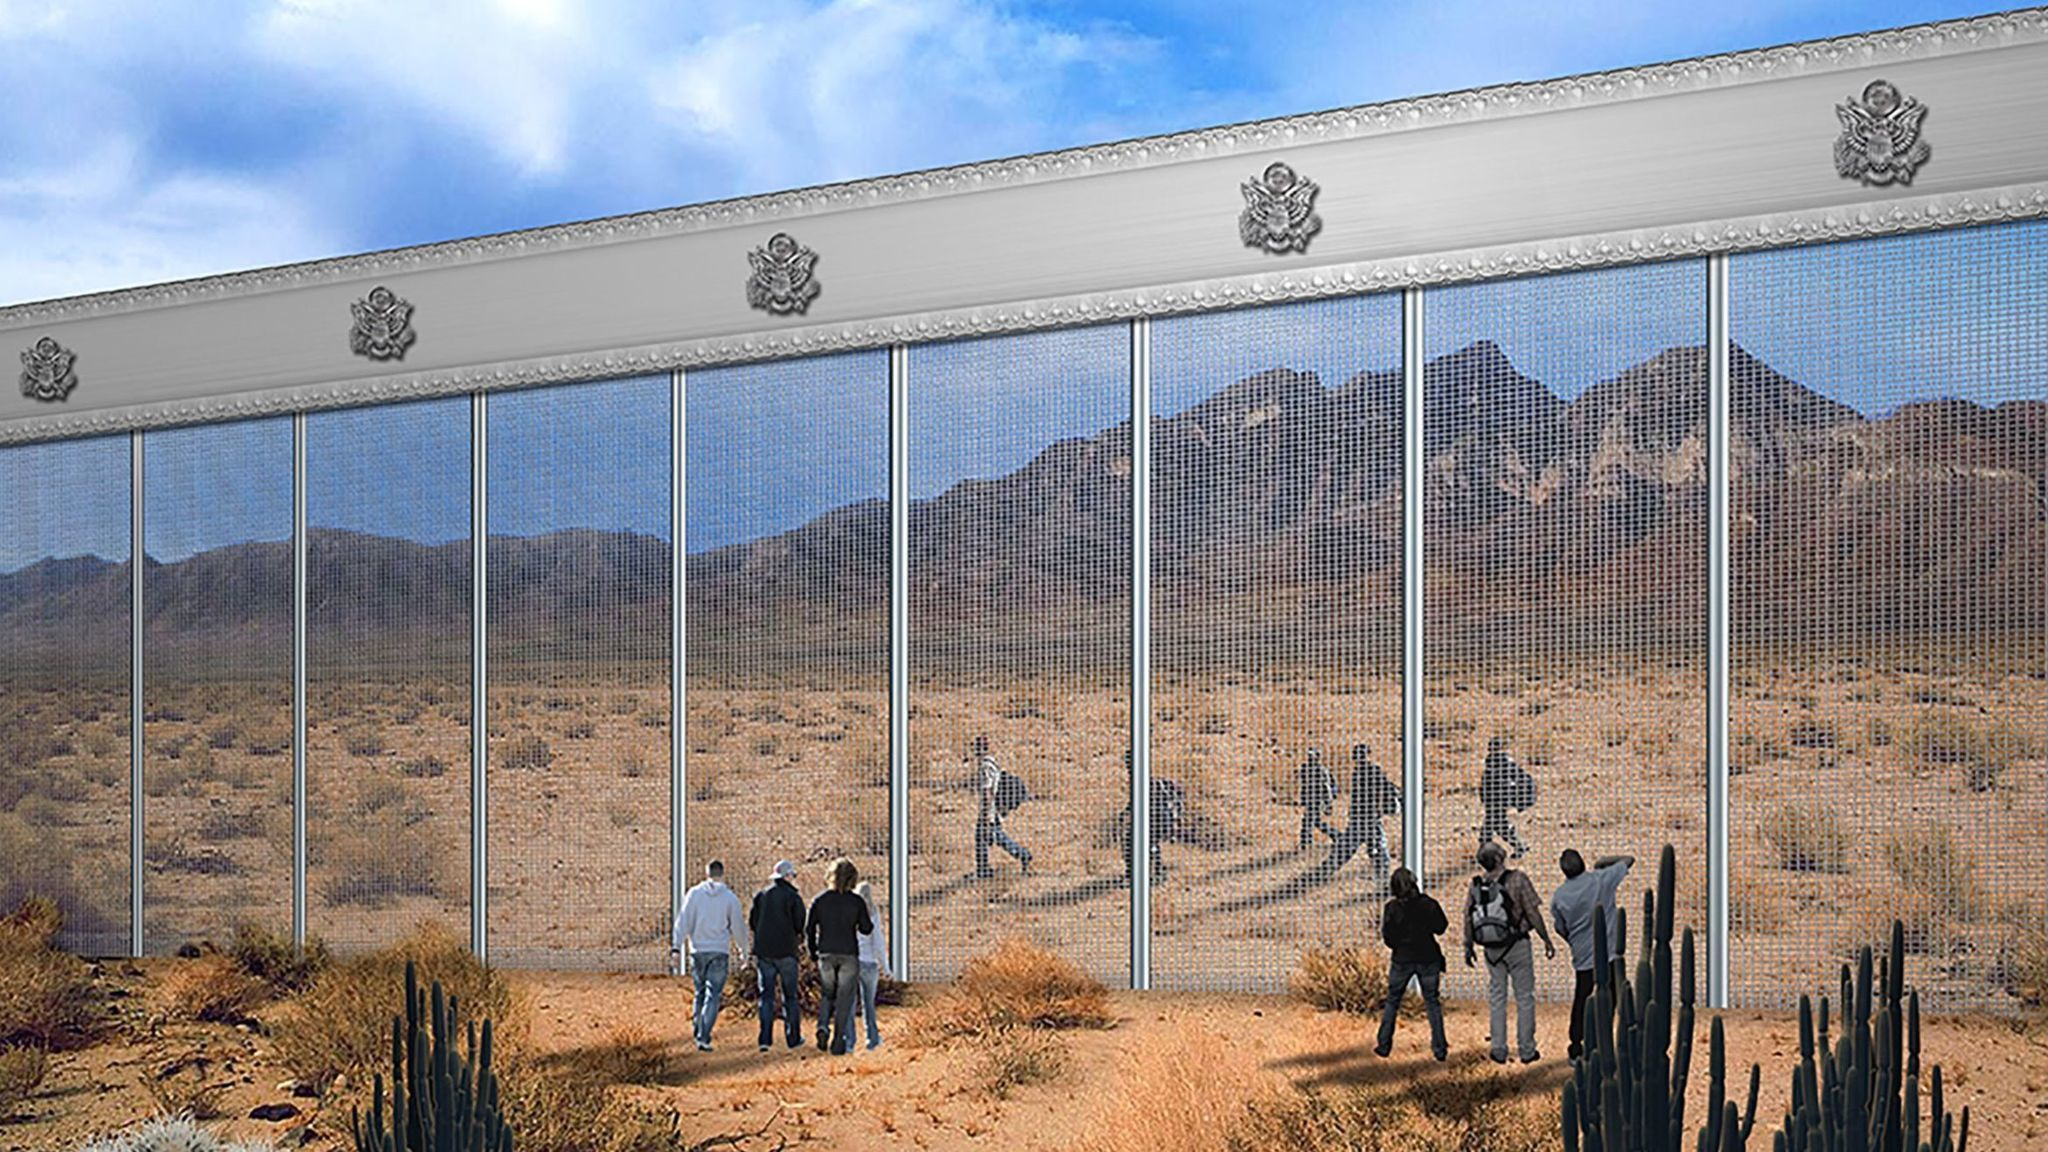 Bid Protest Puts Border Wall On Hold For Months The San